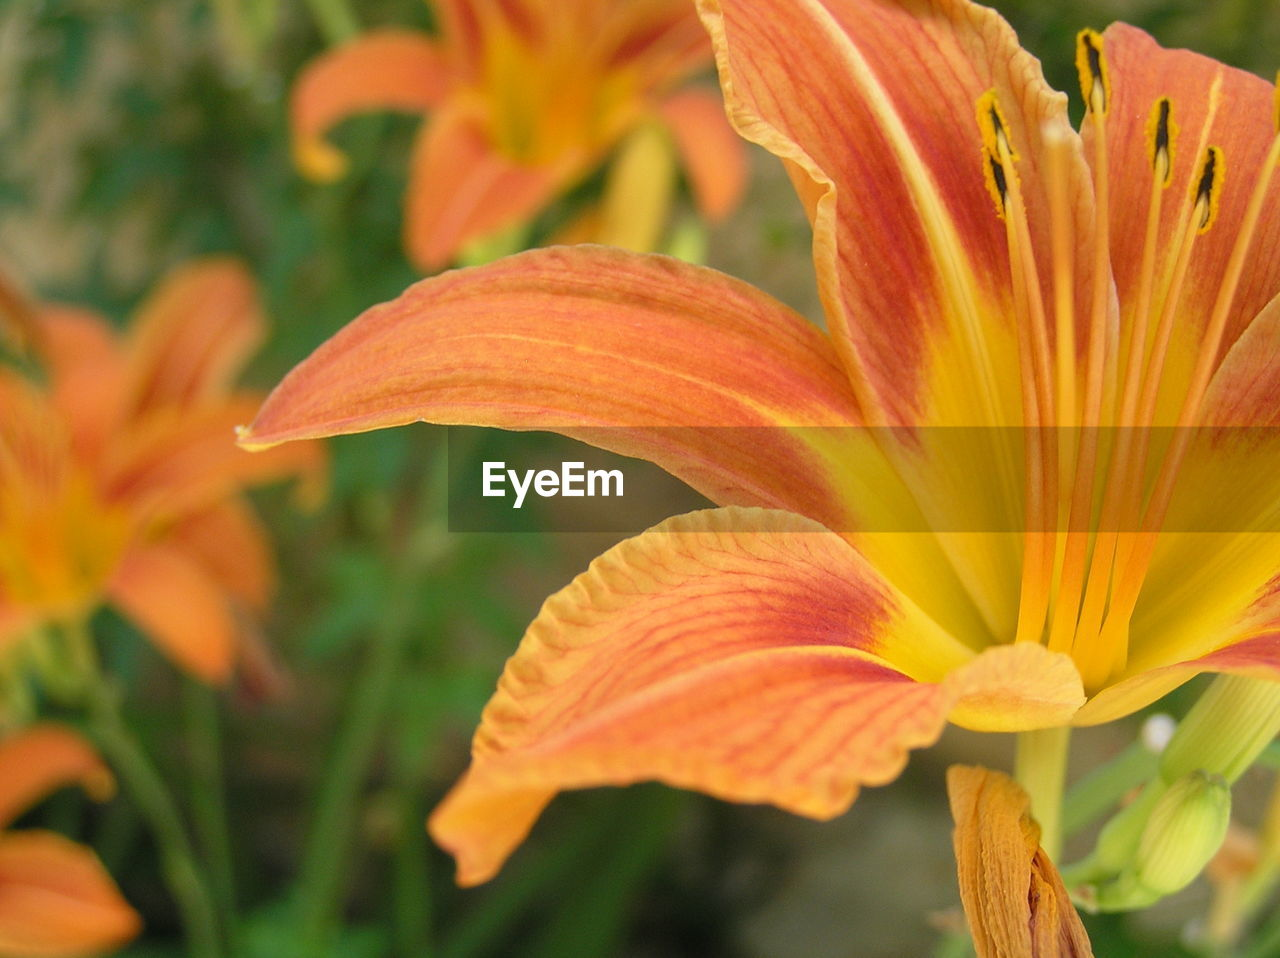 flower, petal, orange color, flower head, growth, freshness, day lily, beauty in nature, fragility, nature, close-up, no people, focus on foreground, plant, day, stamen, lily, blooming, outdoors